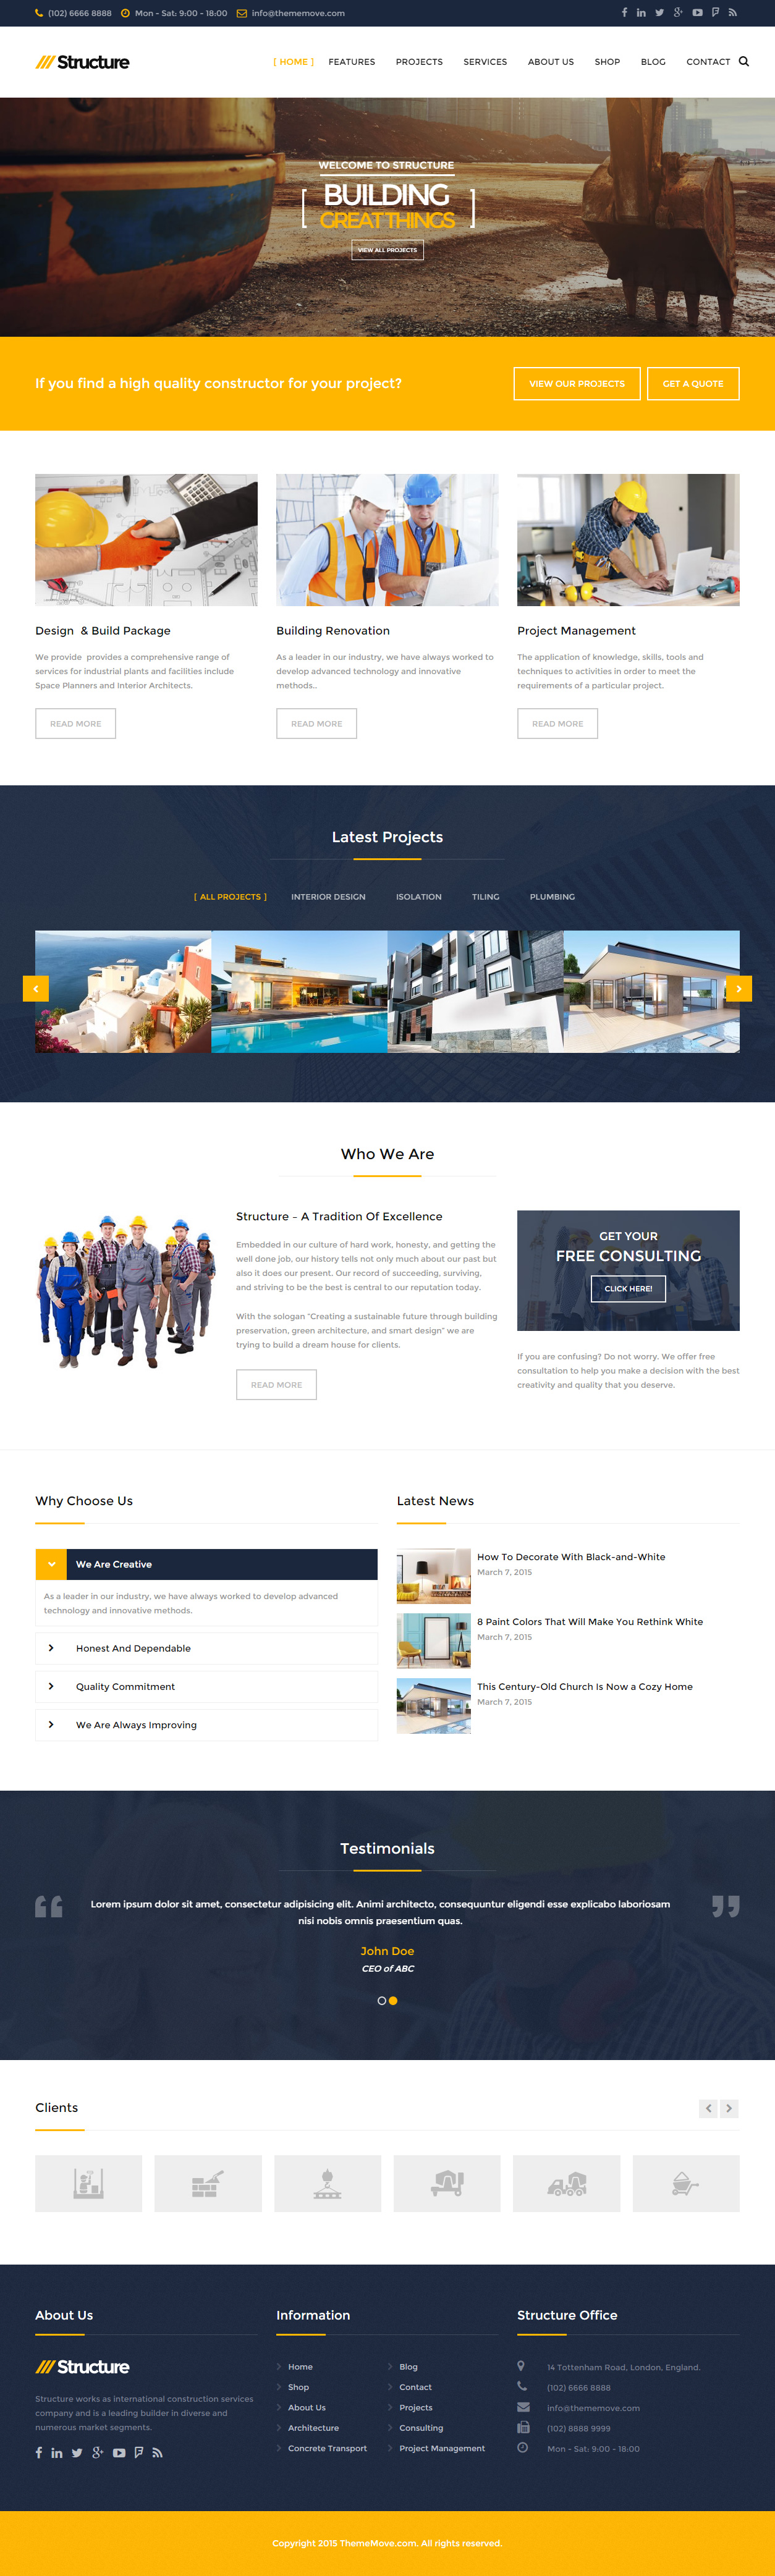 structure-wp-theme